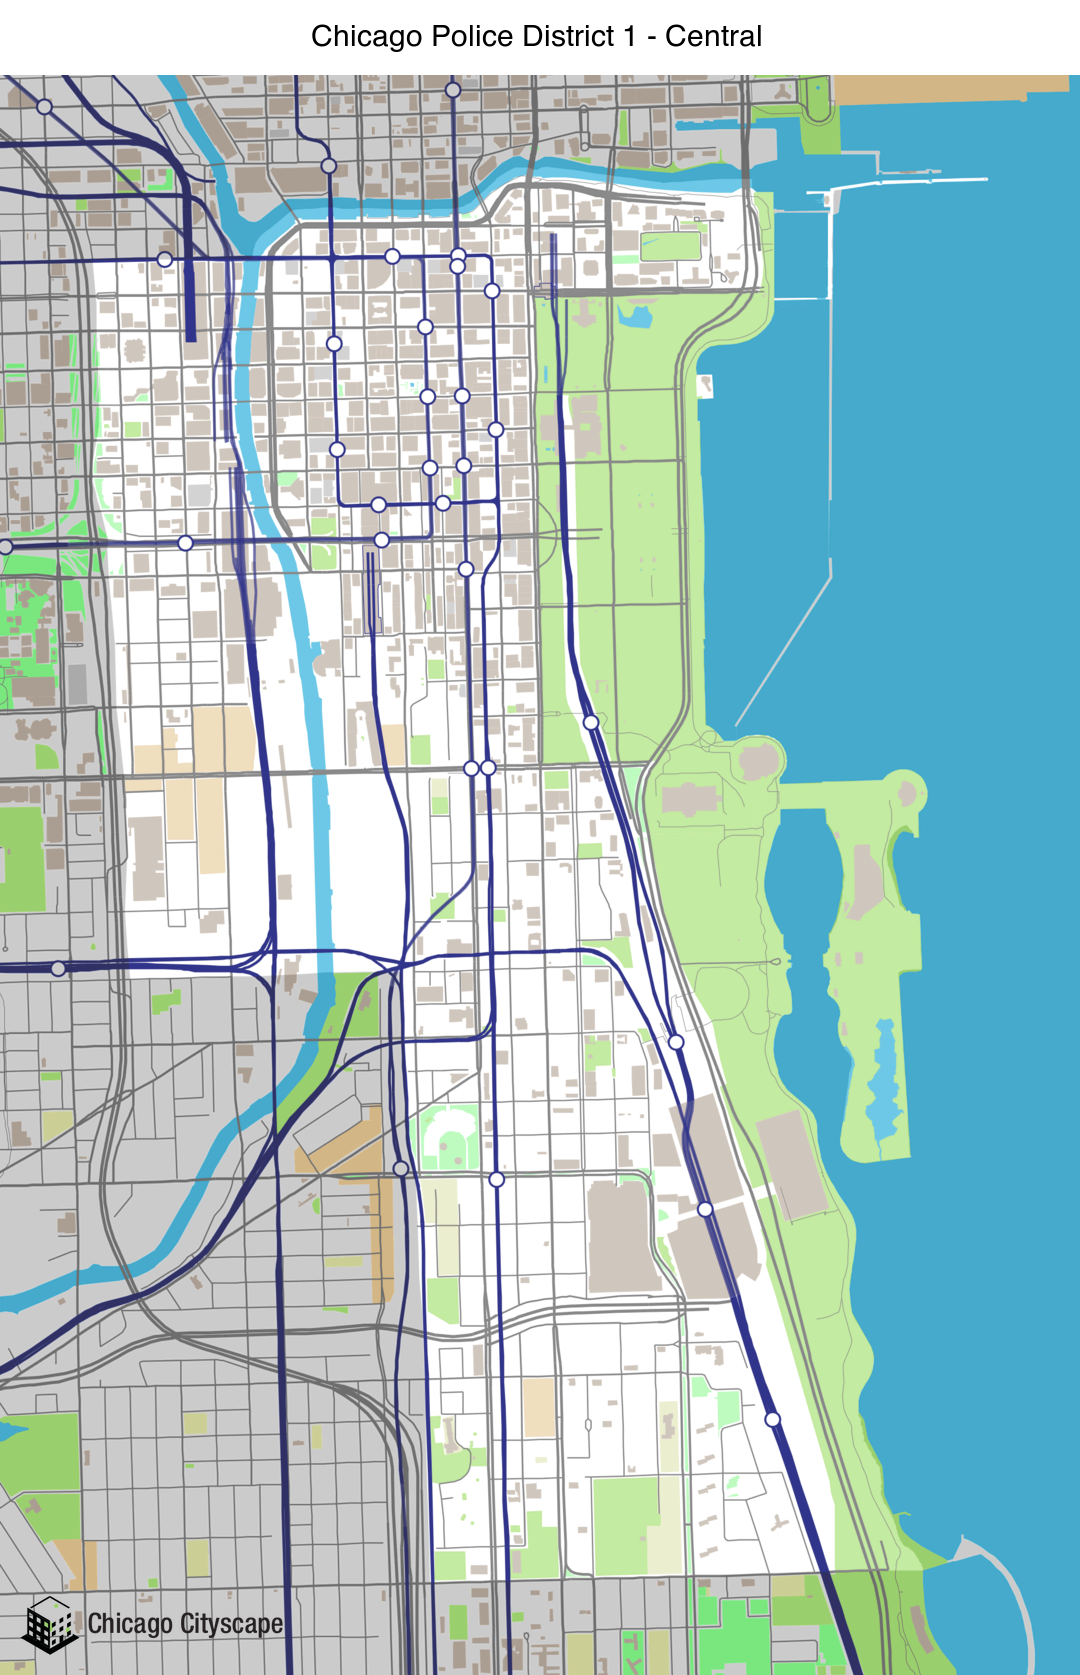 Chicago Cityscape - Map of building projects, properties ... on chicago congressional district map, oak park map, chicago police area map, chicago red-light district map, chicago police district 8, chicago pd district map, chicago police department rank structure, chicago police department area 5, chicago police scanner zones, chicago police organizational structure, chicago police car, police live map, ct district 2 map, evanston il zoning map, chicago police crime map, chicago police district 25, chicago police district boundaries, chicago parishes map, chicago police uniform, chicago neighborhood map,